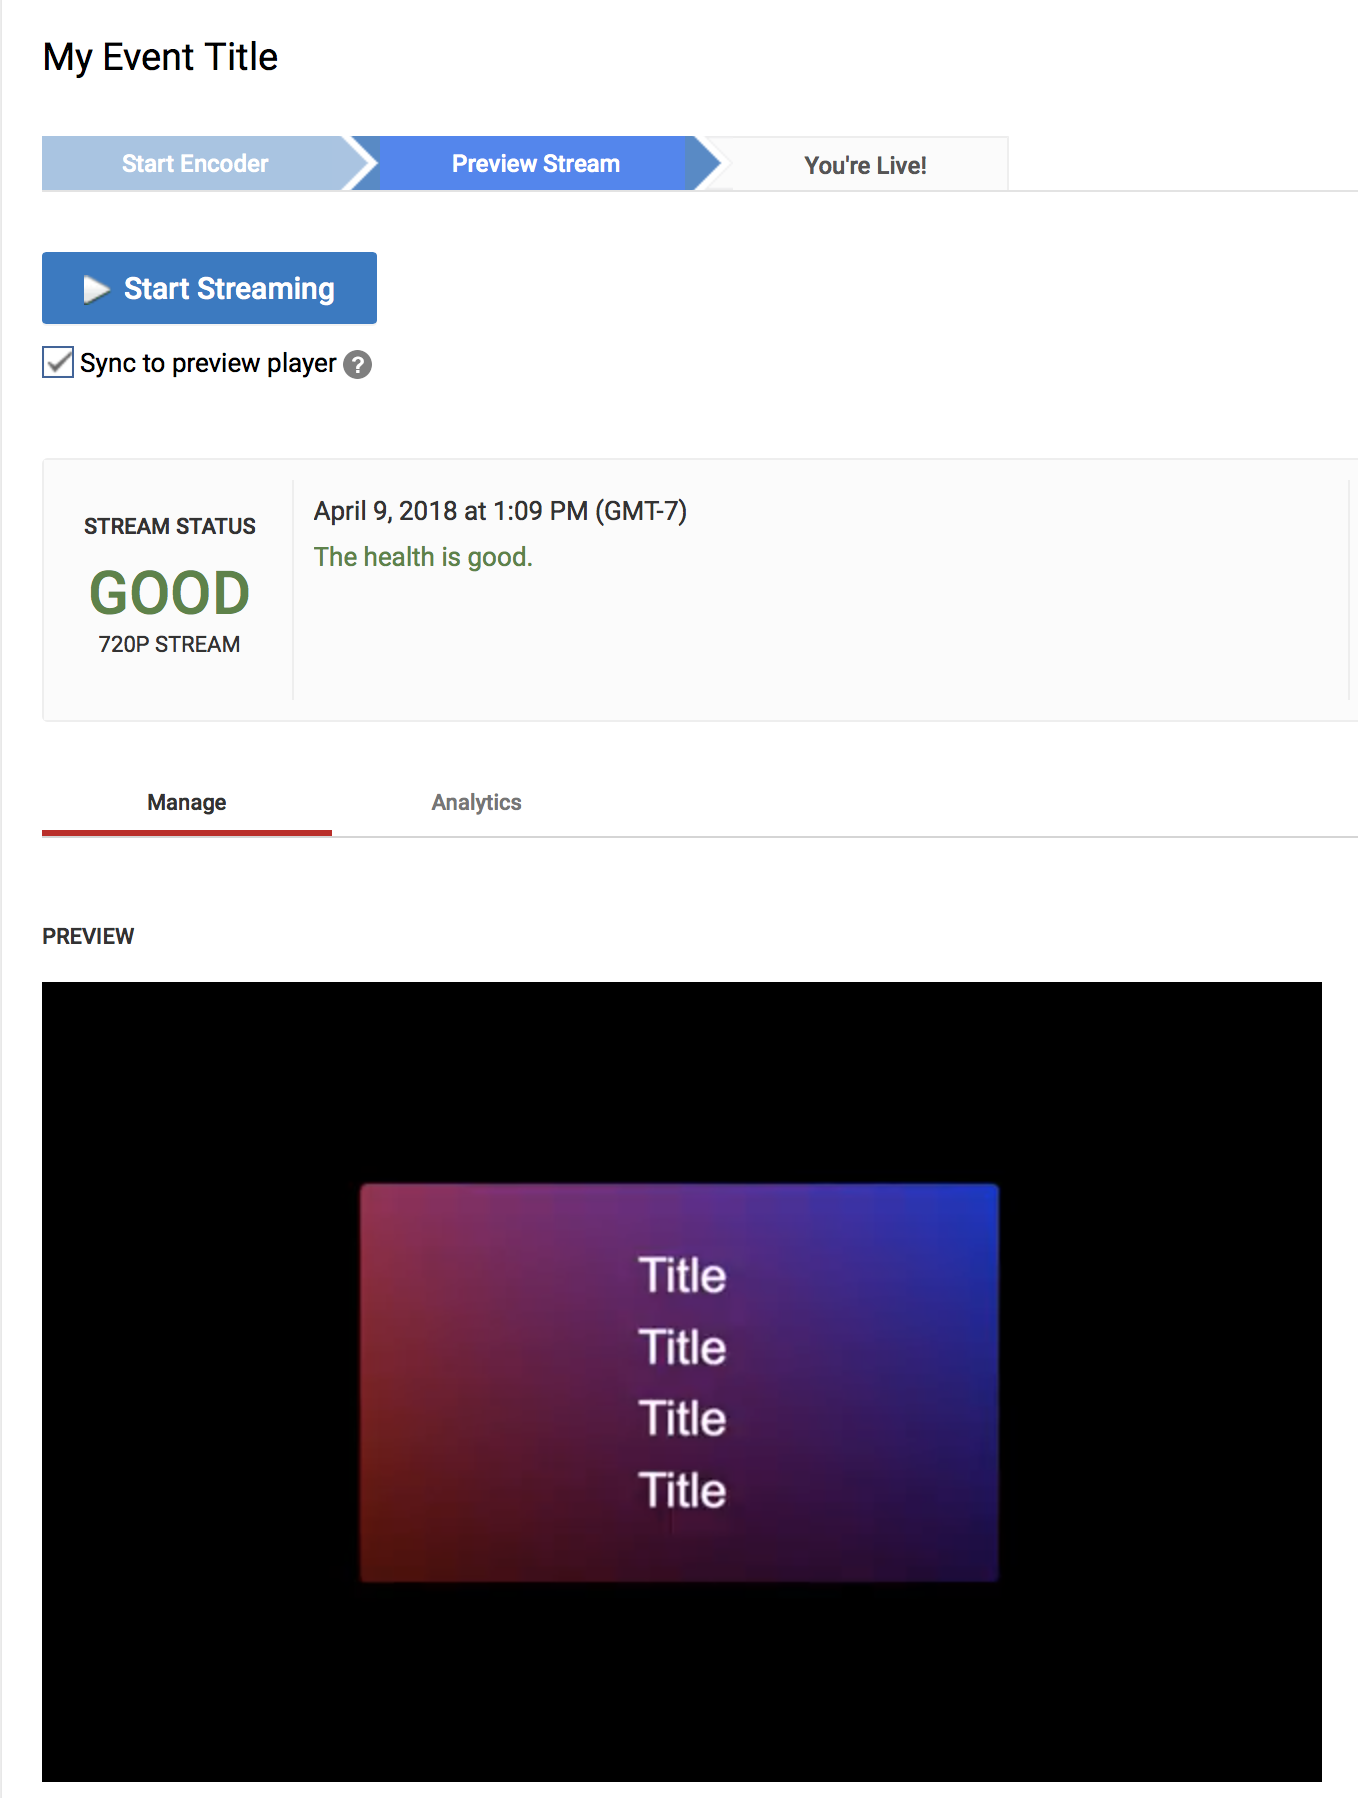 YouTube Live Events are completely broken - Wirecast